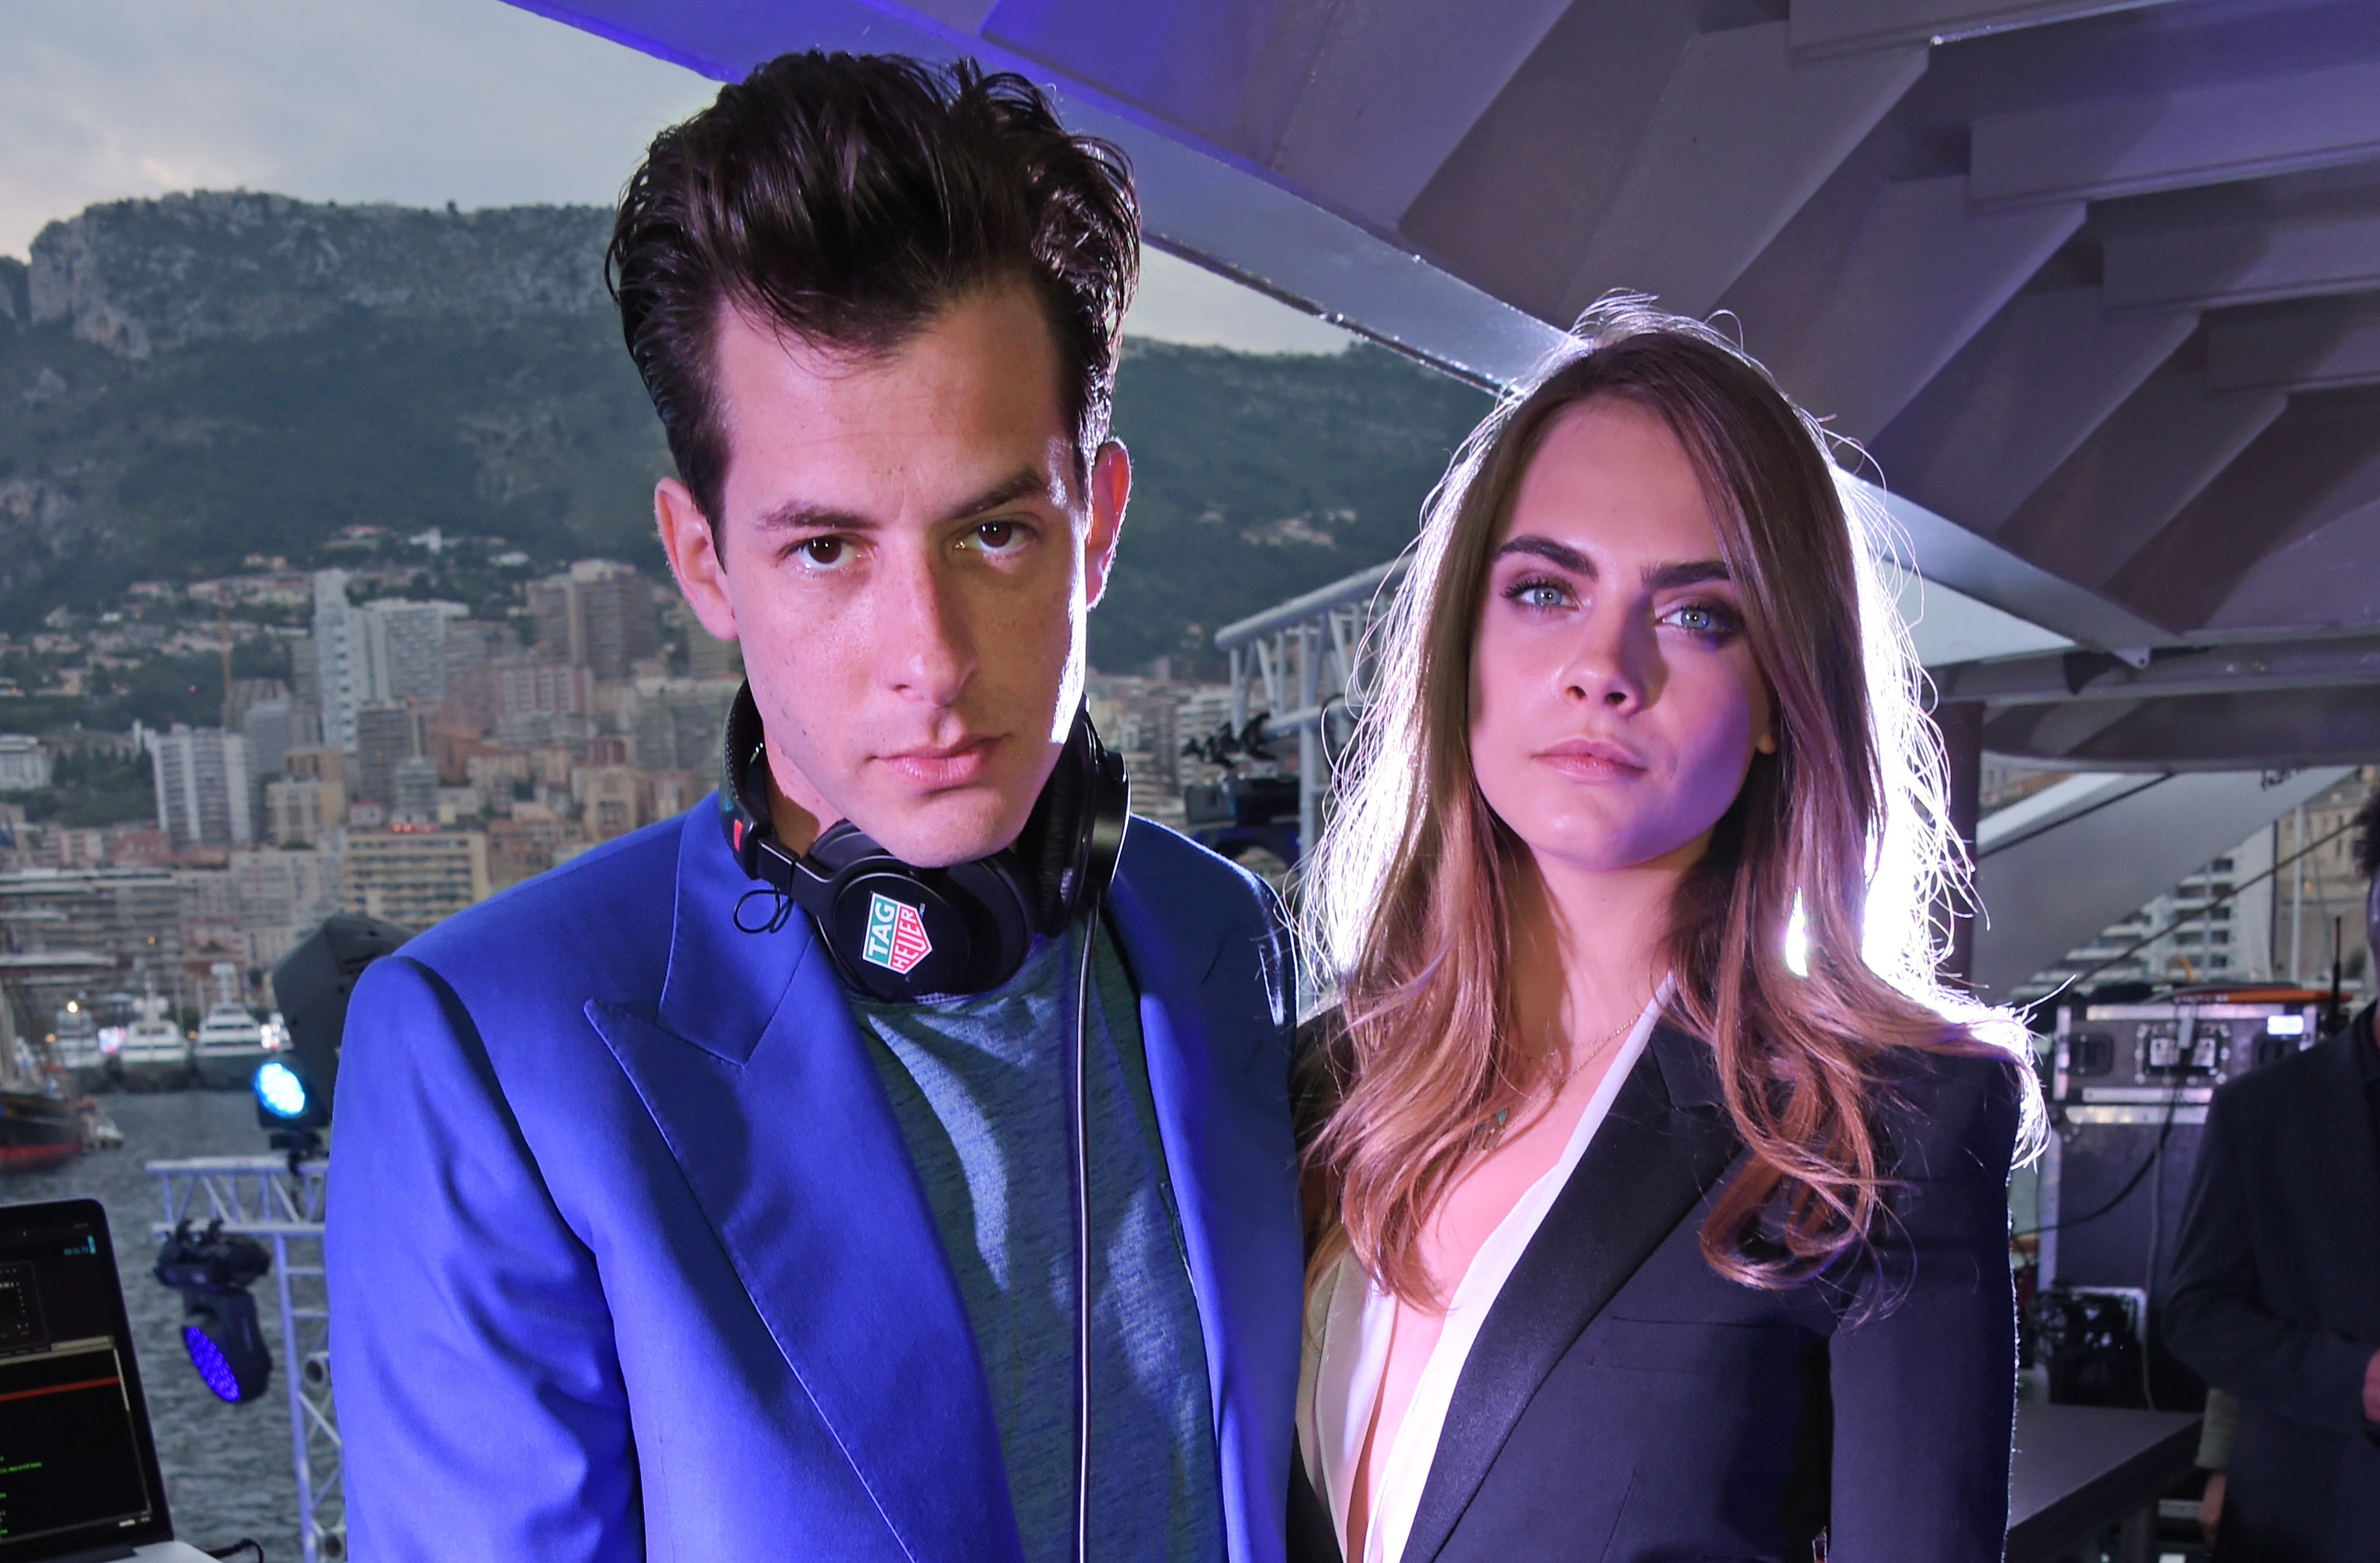 MONACO - MAY 23:  Mark Ronson (L) and brand ambassador Cara Delevingne attend the TAG Heuer Monaco Party on May 23, 2015 in Monaco, Monaco.  (Photo by David M. Benett/Getty Images for TAG Heuer) *** Local Caption *** Mark Ronson; Cara Delevingne